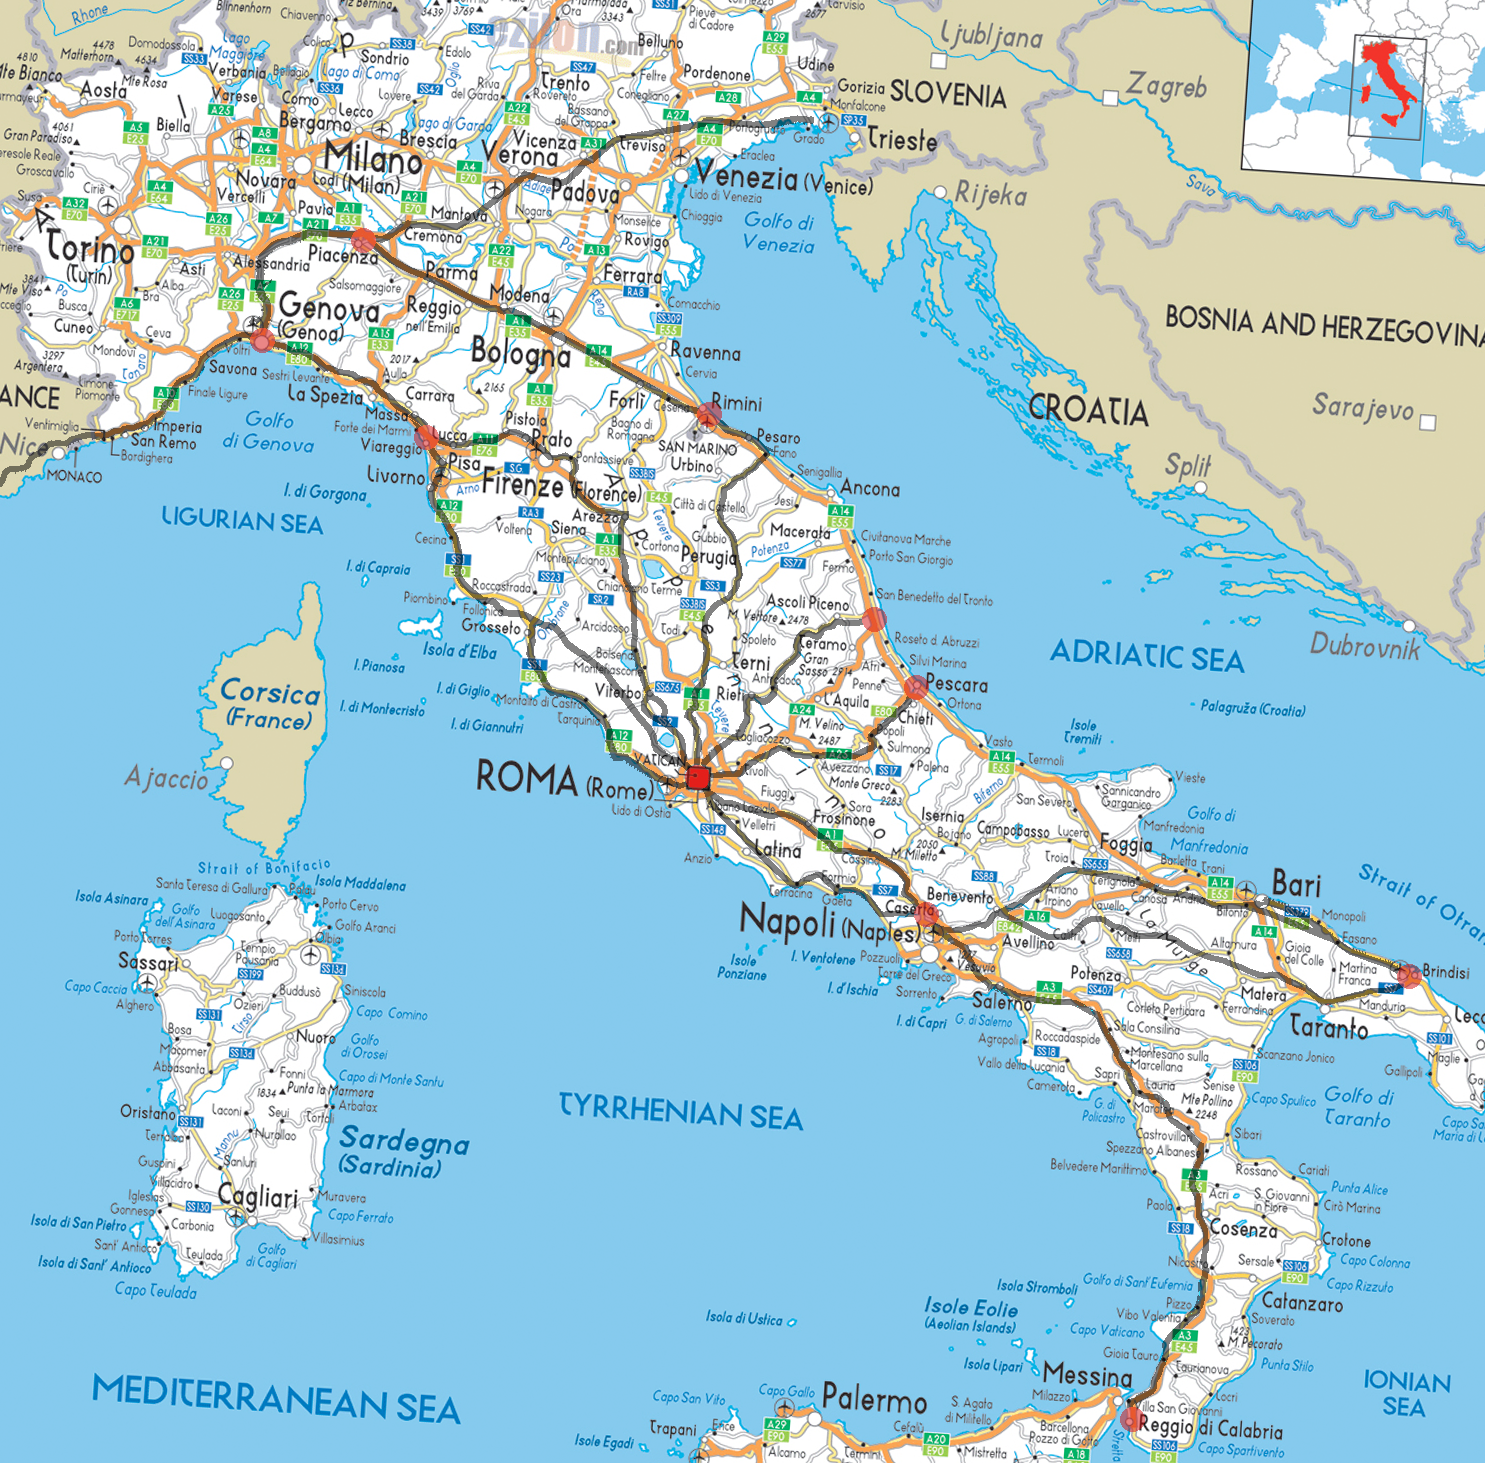 Map Of Ancient Italy Regions.Ancient Roman Roads Overlaid On A Modern Road Map Of Italy Maps